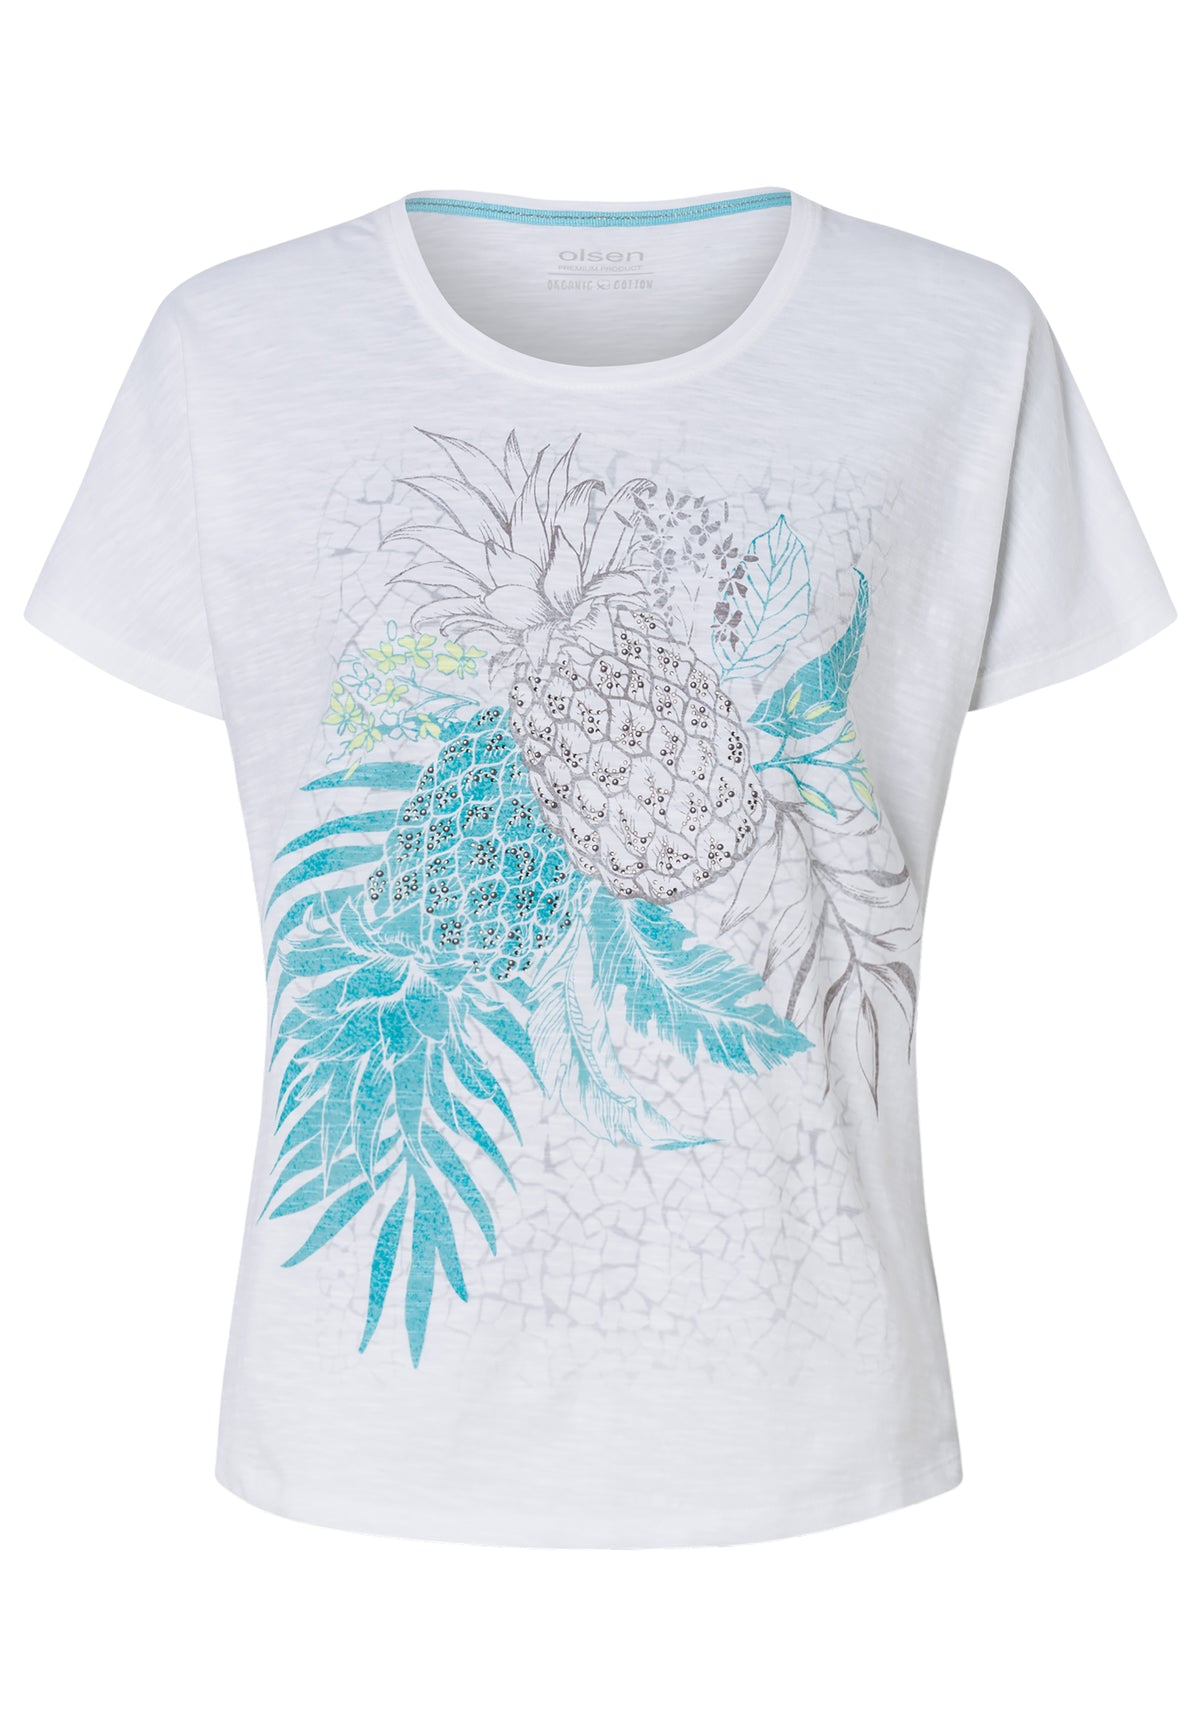 100% Cotton Short Sleeve Crew Neck T-Shirt with Artsy Pineapple Print